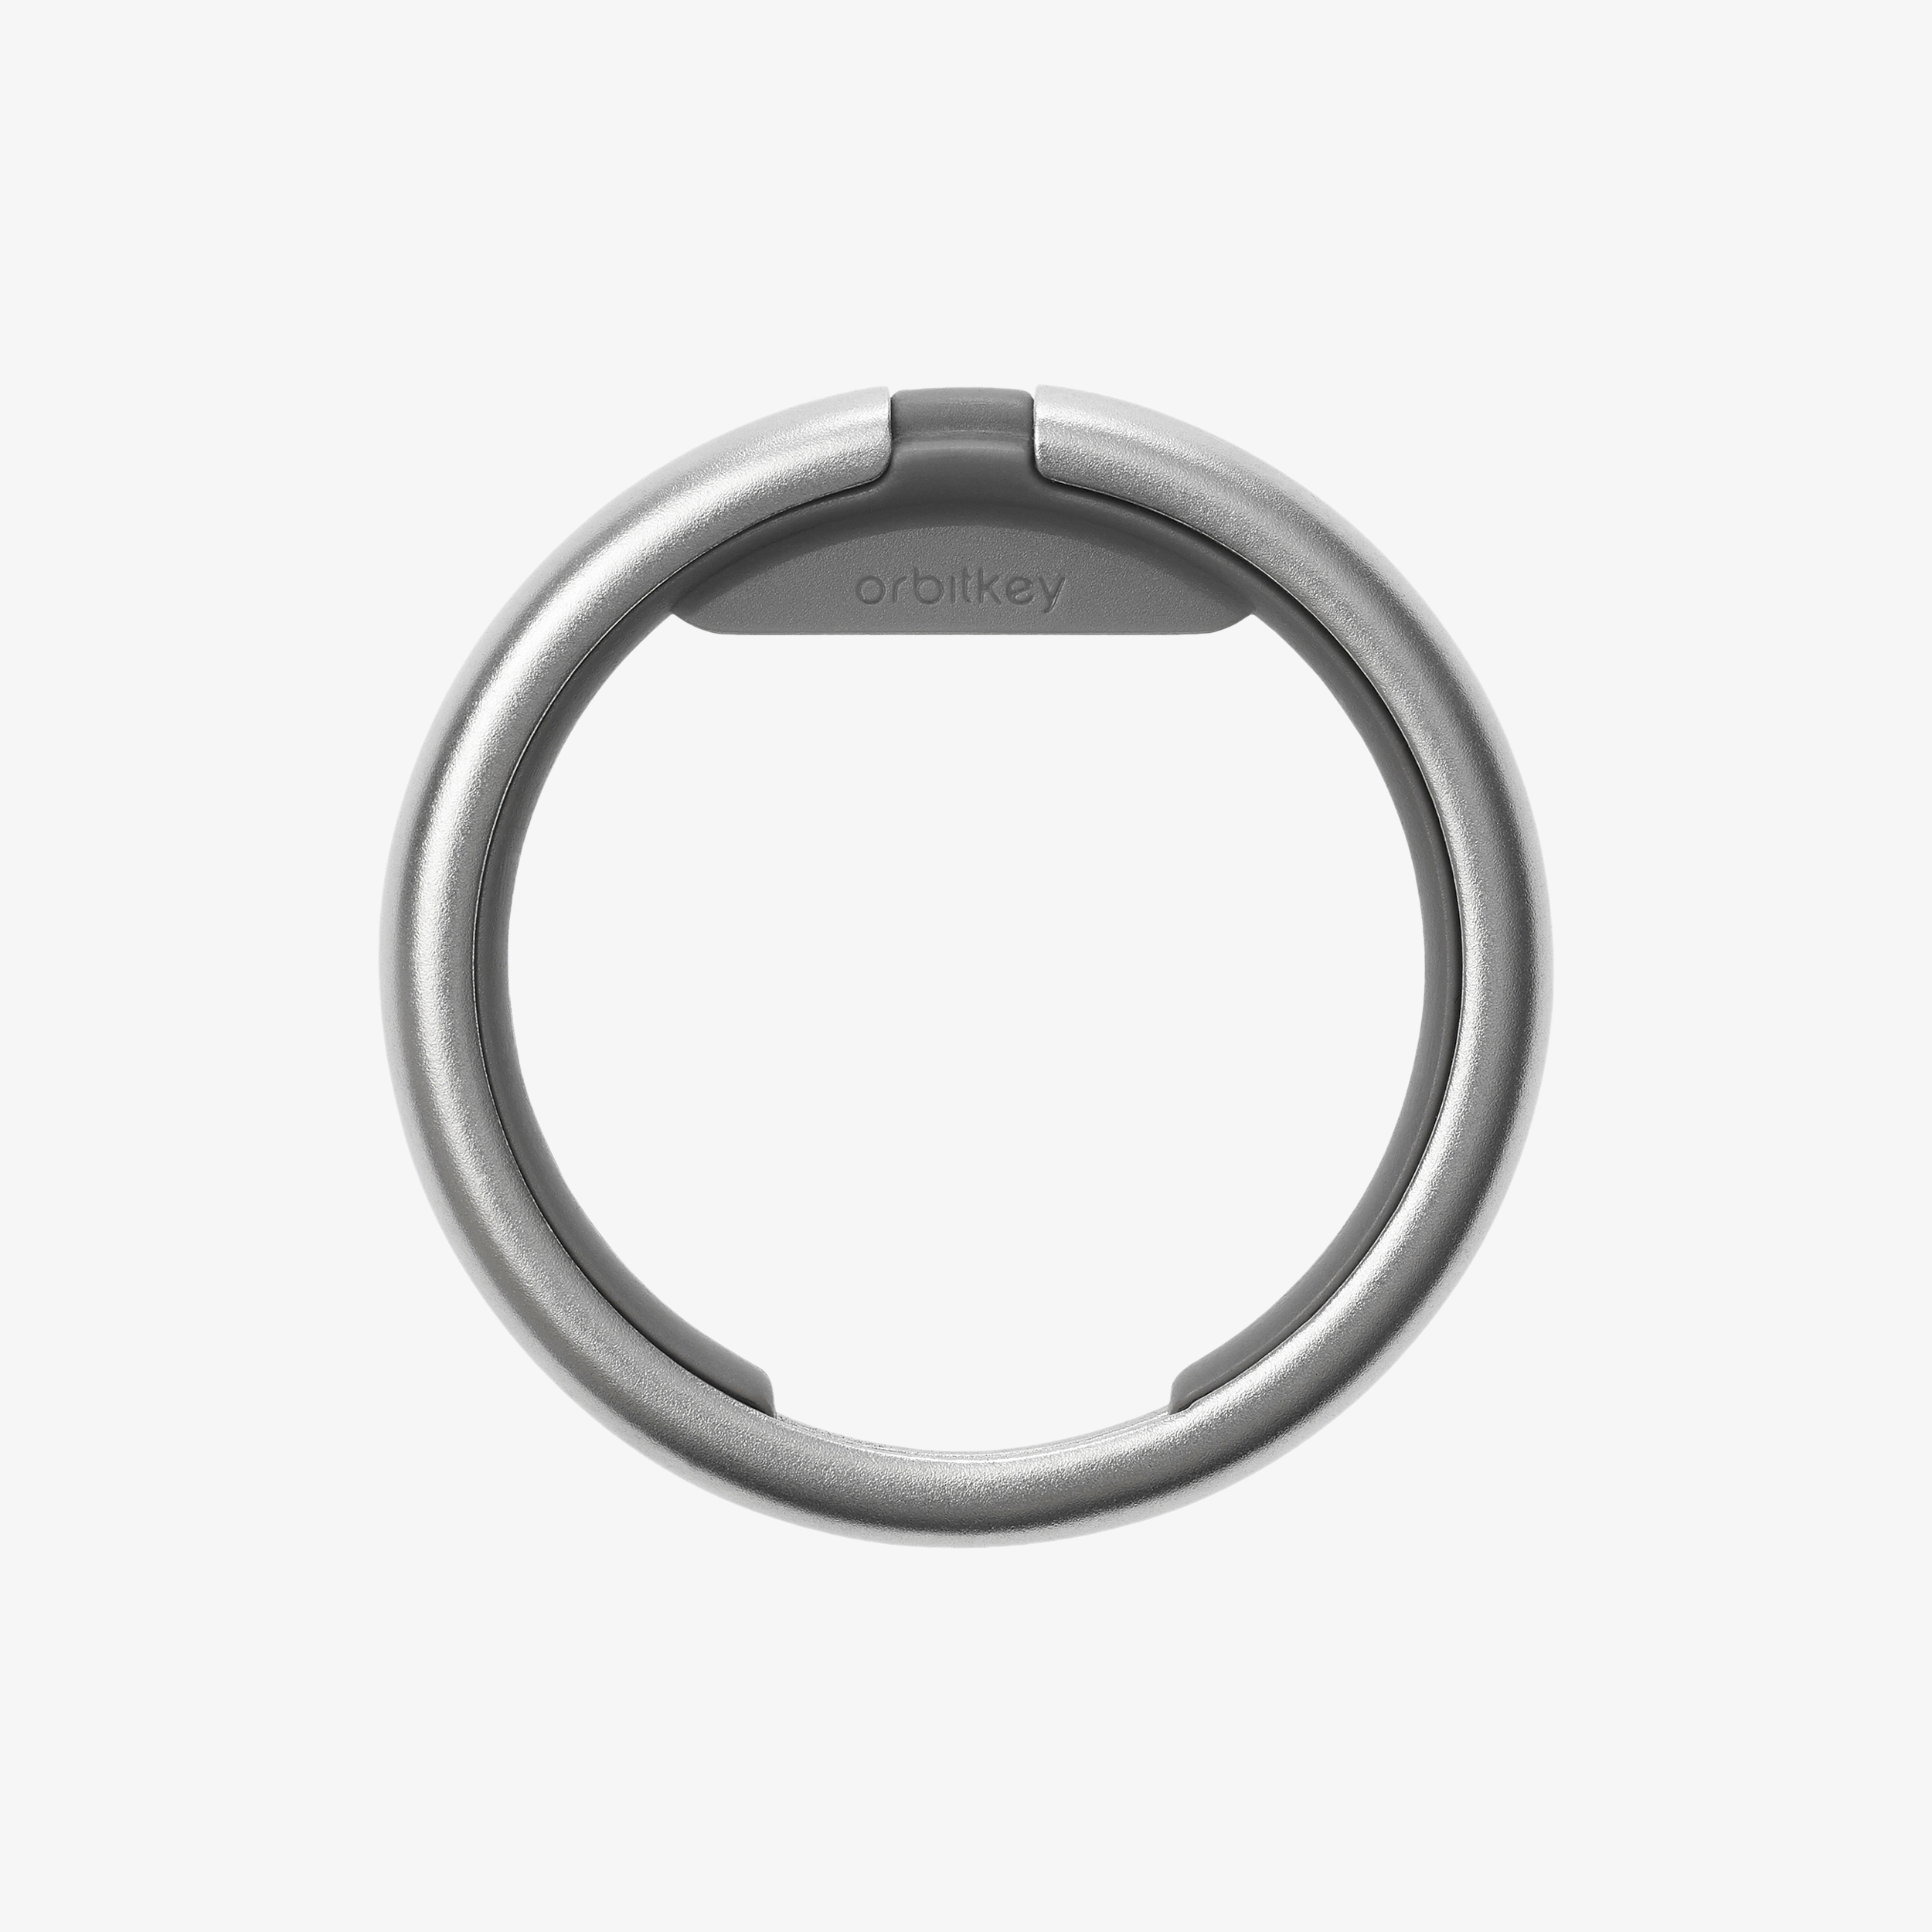 Modische Accessoires Orbitkey Ring Charcoal